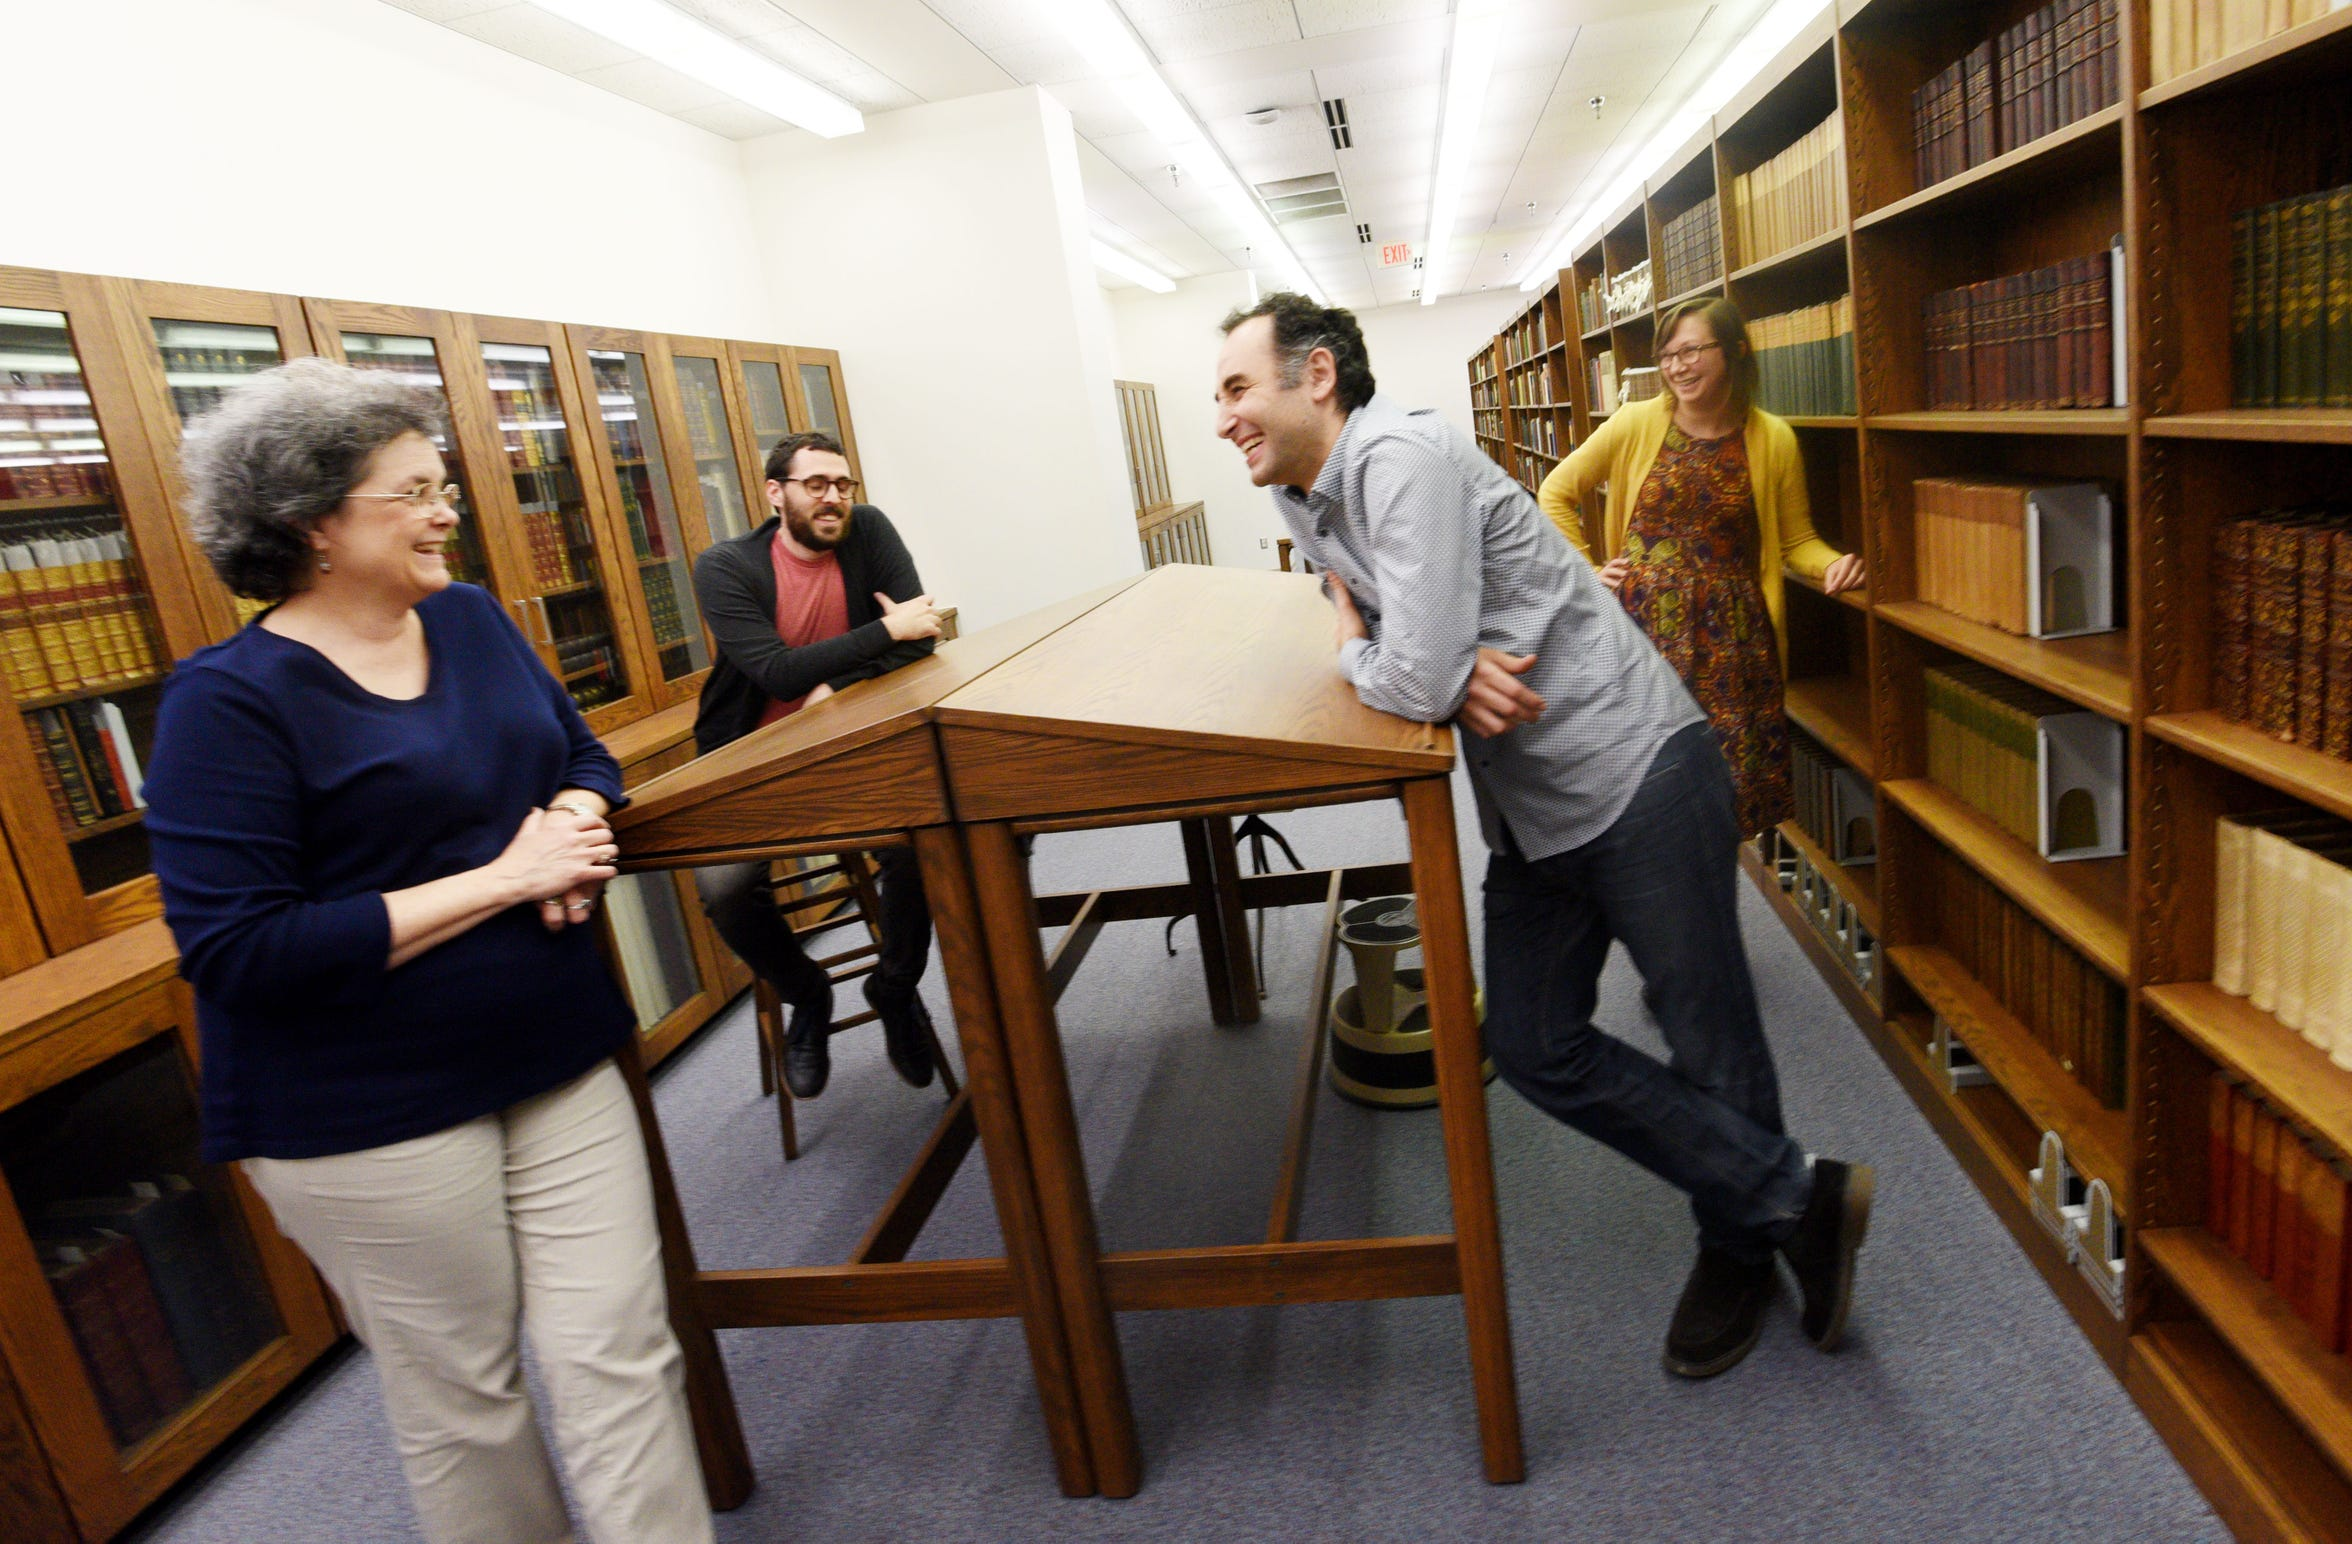 Tthe rare book collection at Noel Memorial Library's staff includes Director Martha Lawler (left), Curator Alexander Mikaberidze (right), and Cataloguers Andrea Schuba and Tyler Cunningham.